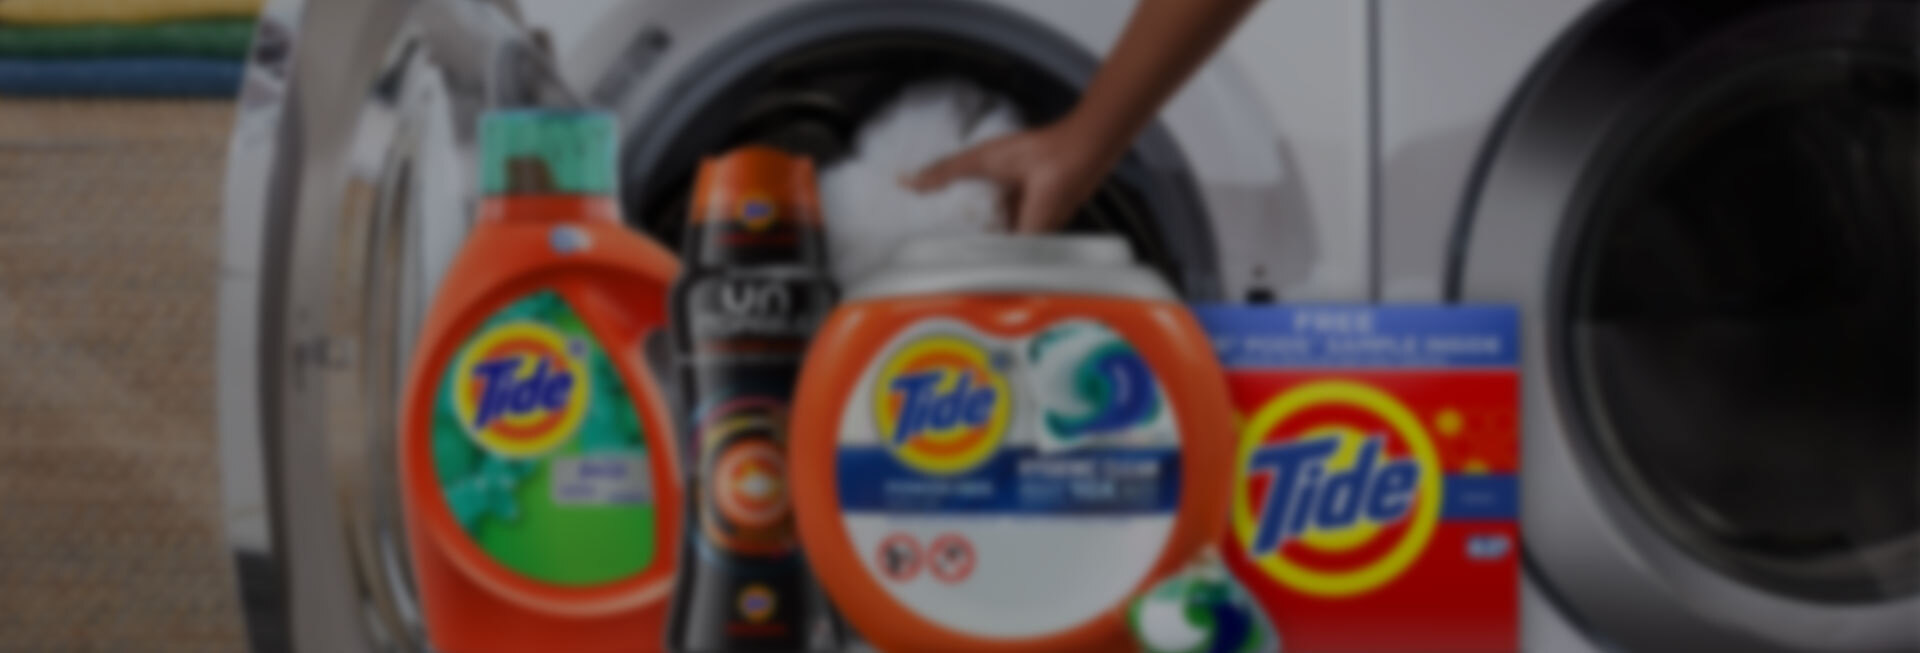 Various Tide products in front of a washer